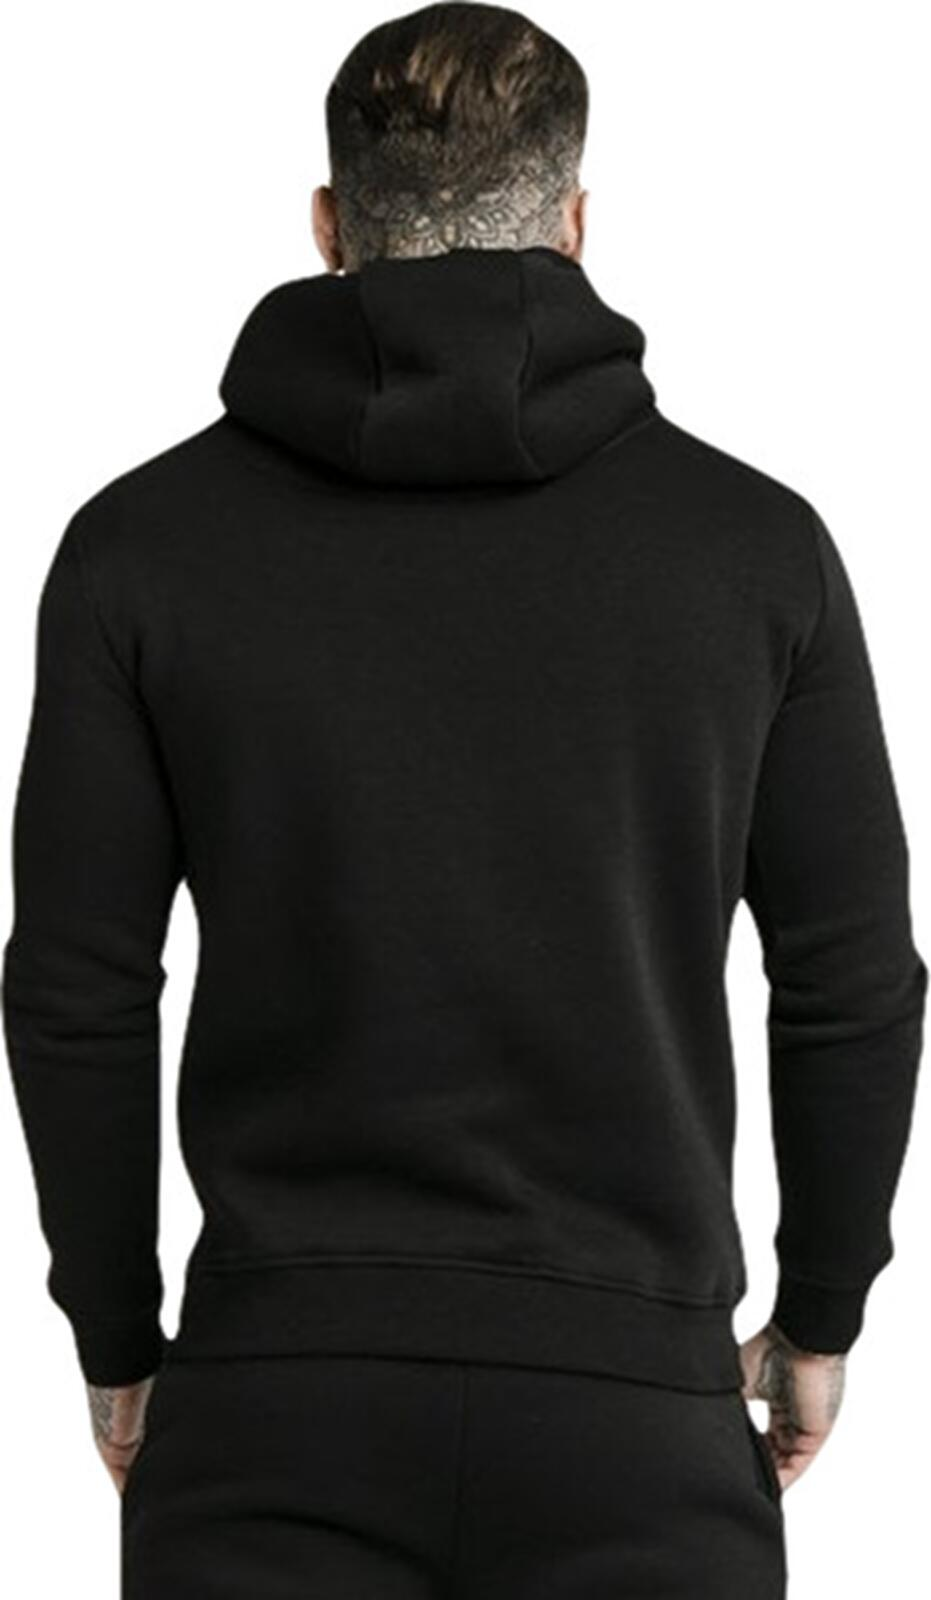 Sik Silk Muscle Fit Hoodie Black